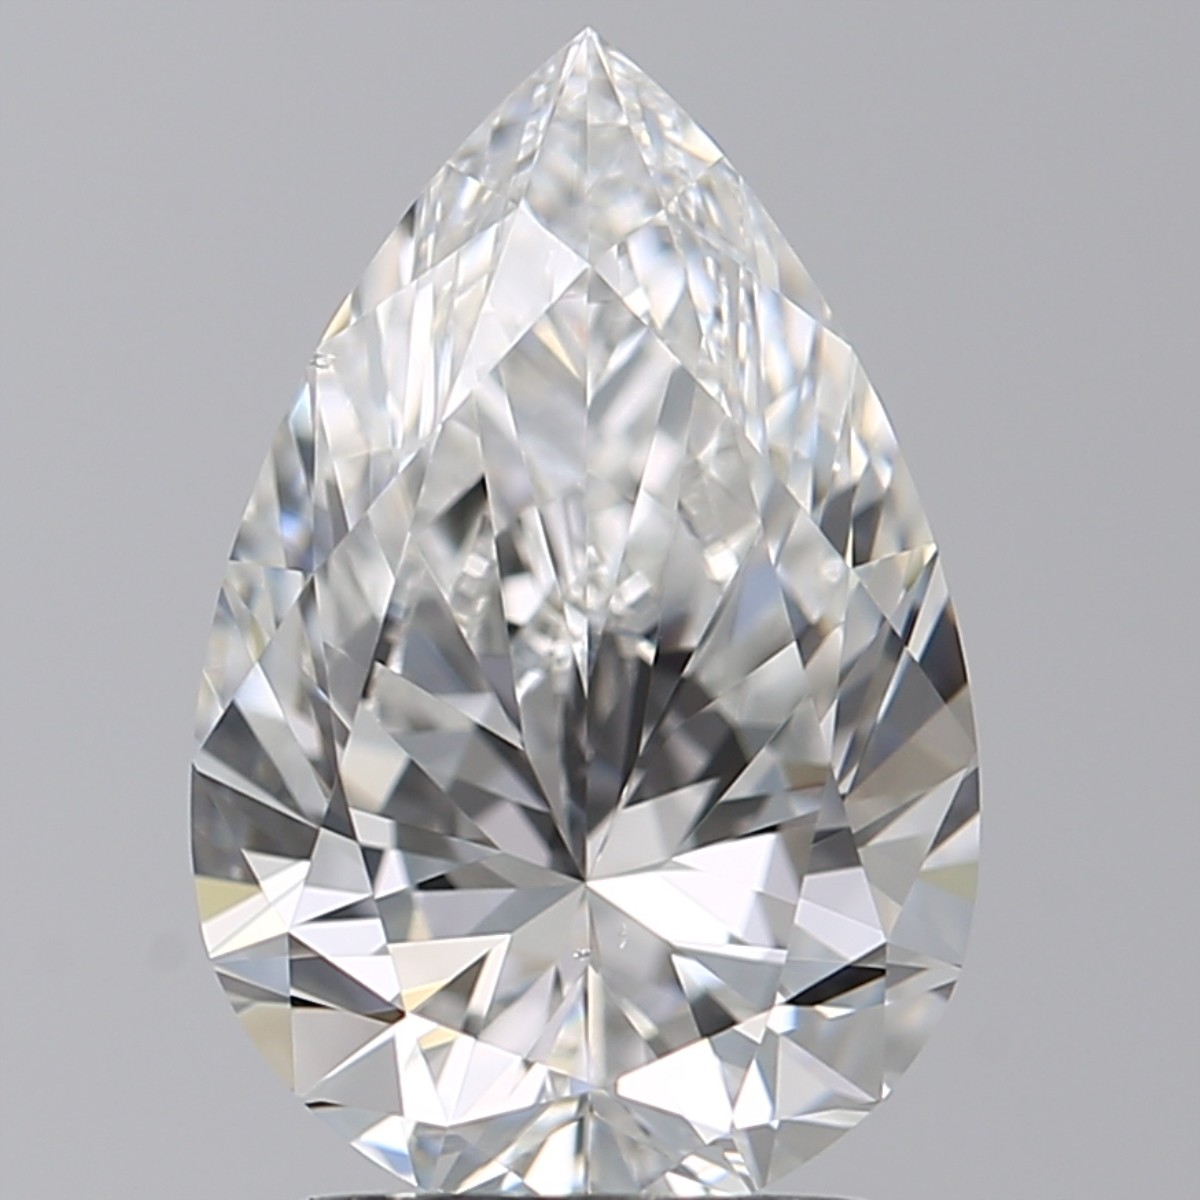 2.02 Carat Pear Diamond (F/VS2)